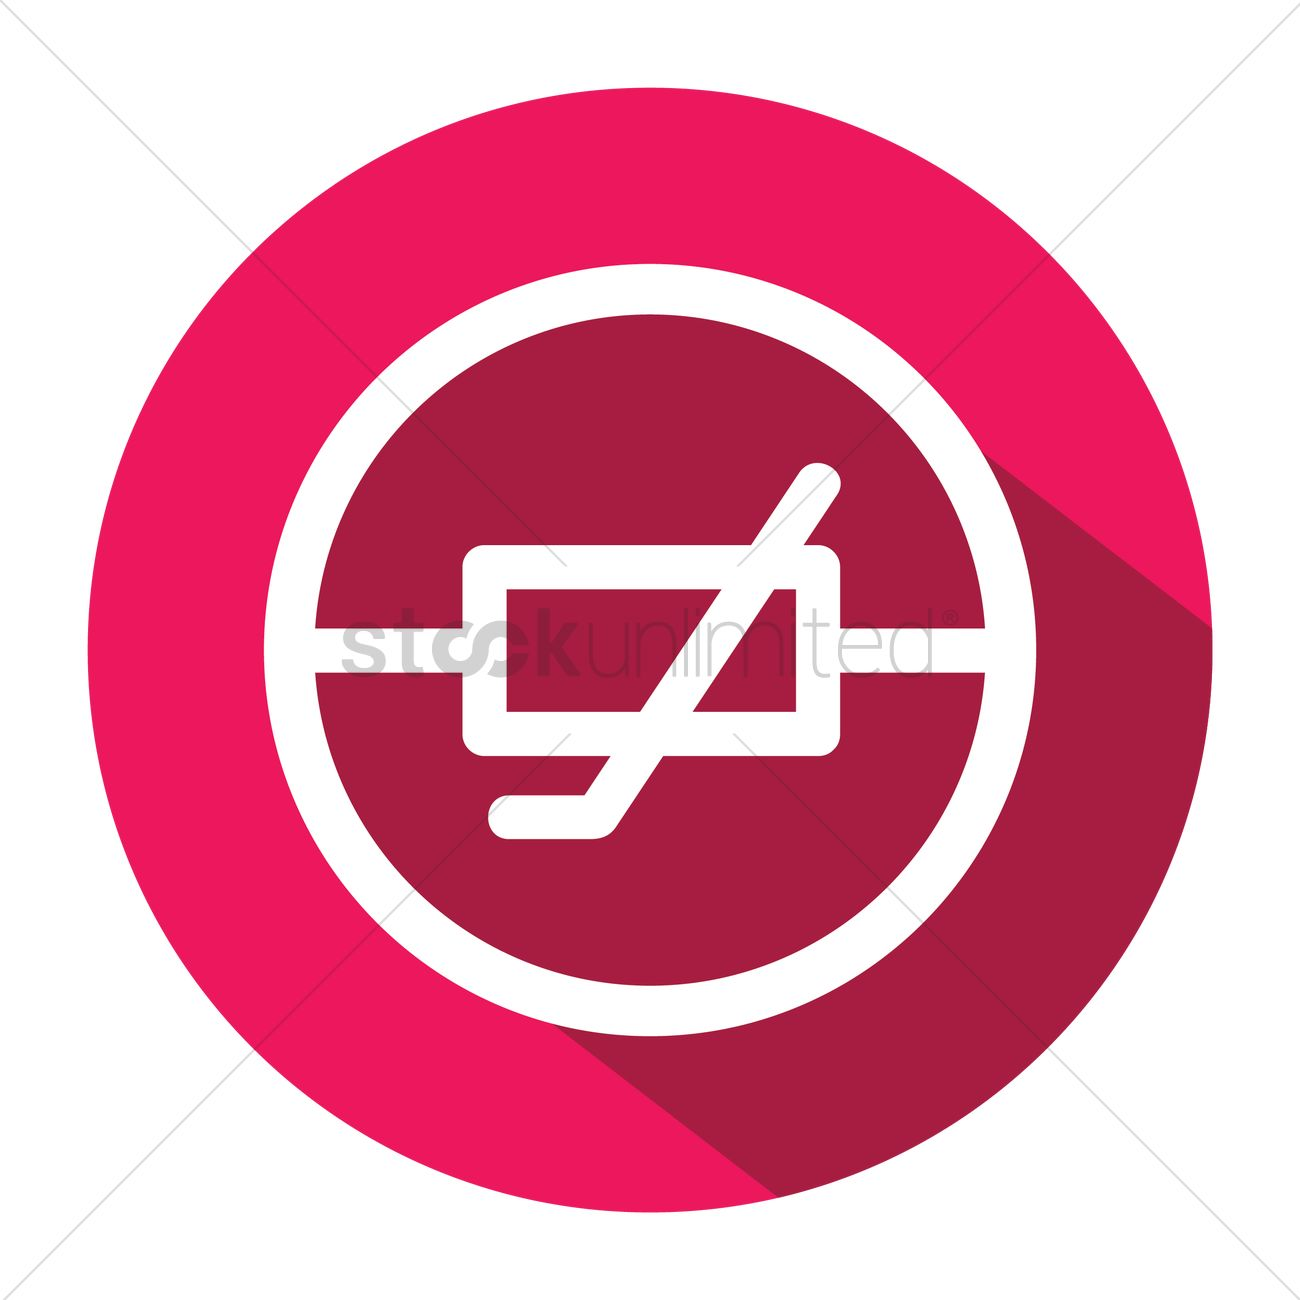 Free Electric Circuit Symbol For Thermistor Vector Image 1248247 Graphic